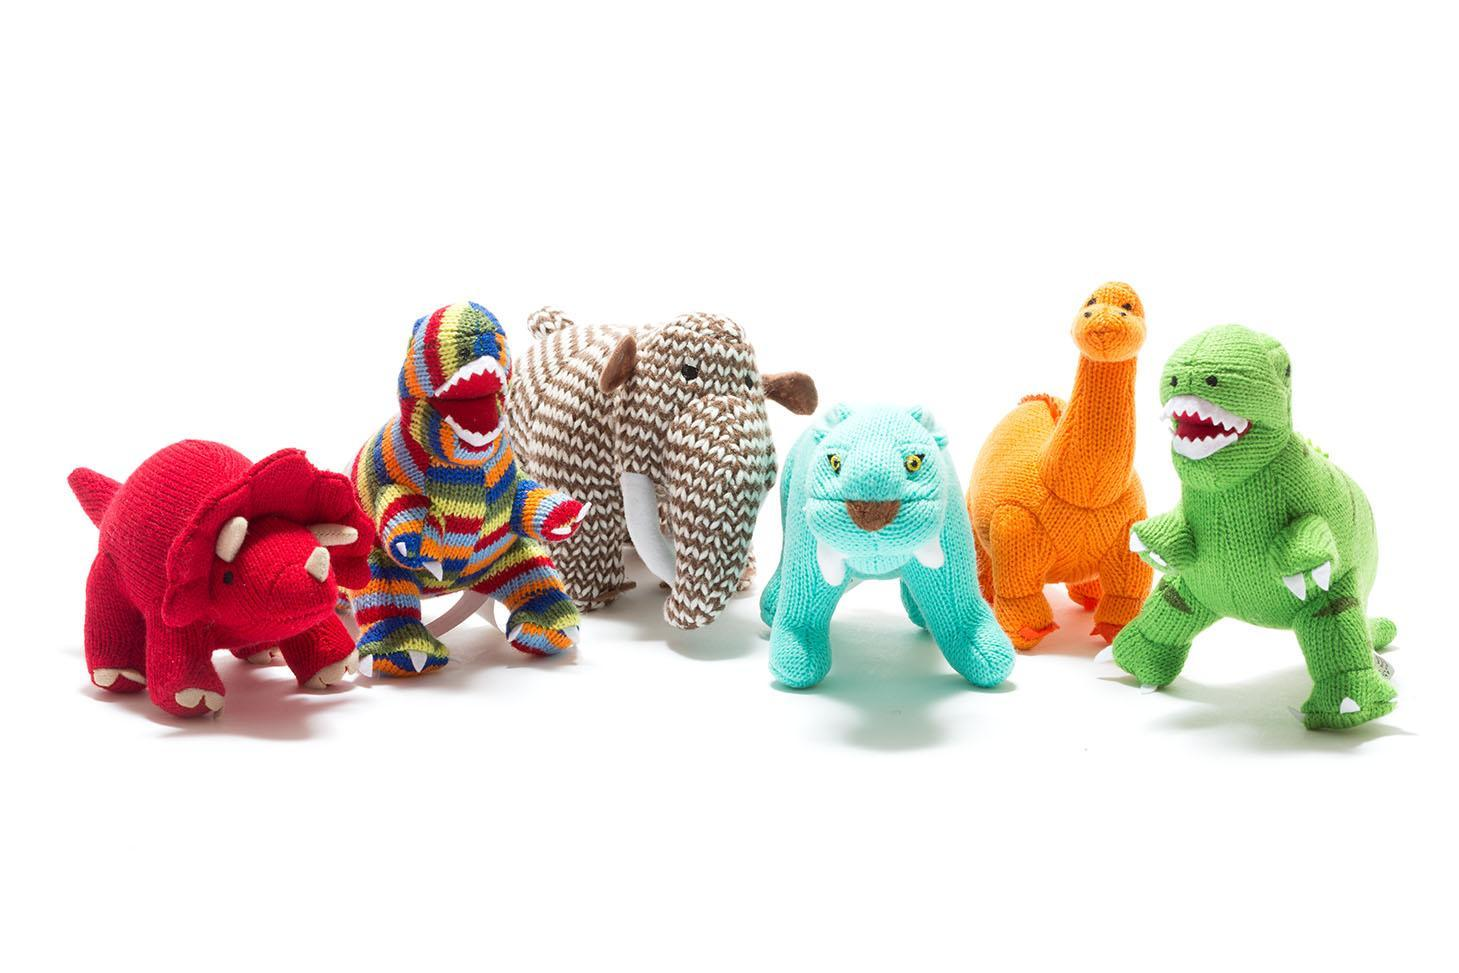 Which Dinosaur Toy? A Guide For Choosing The Right Dinosaur Toy For Your Child